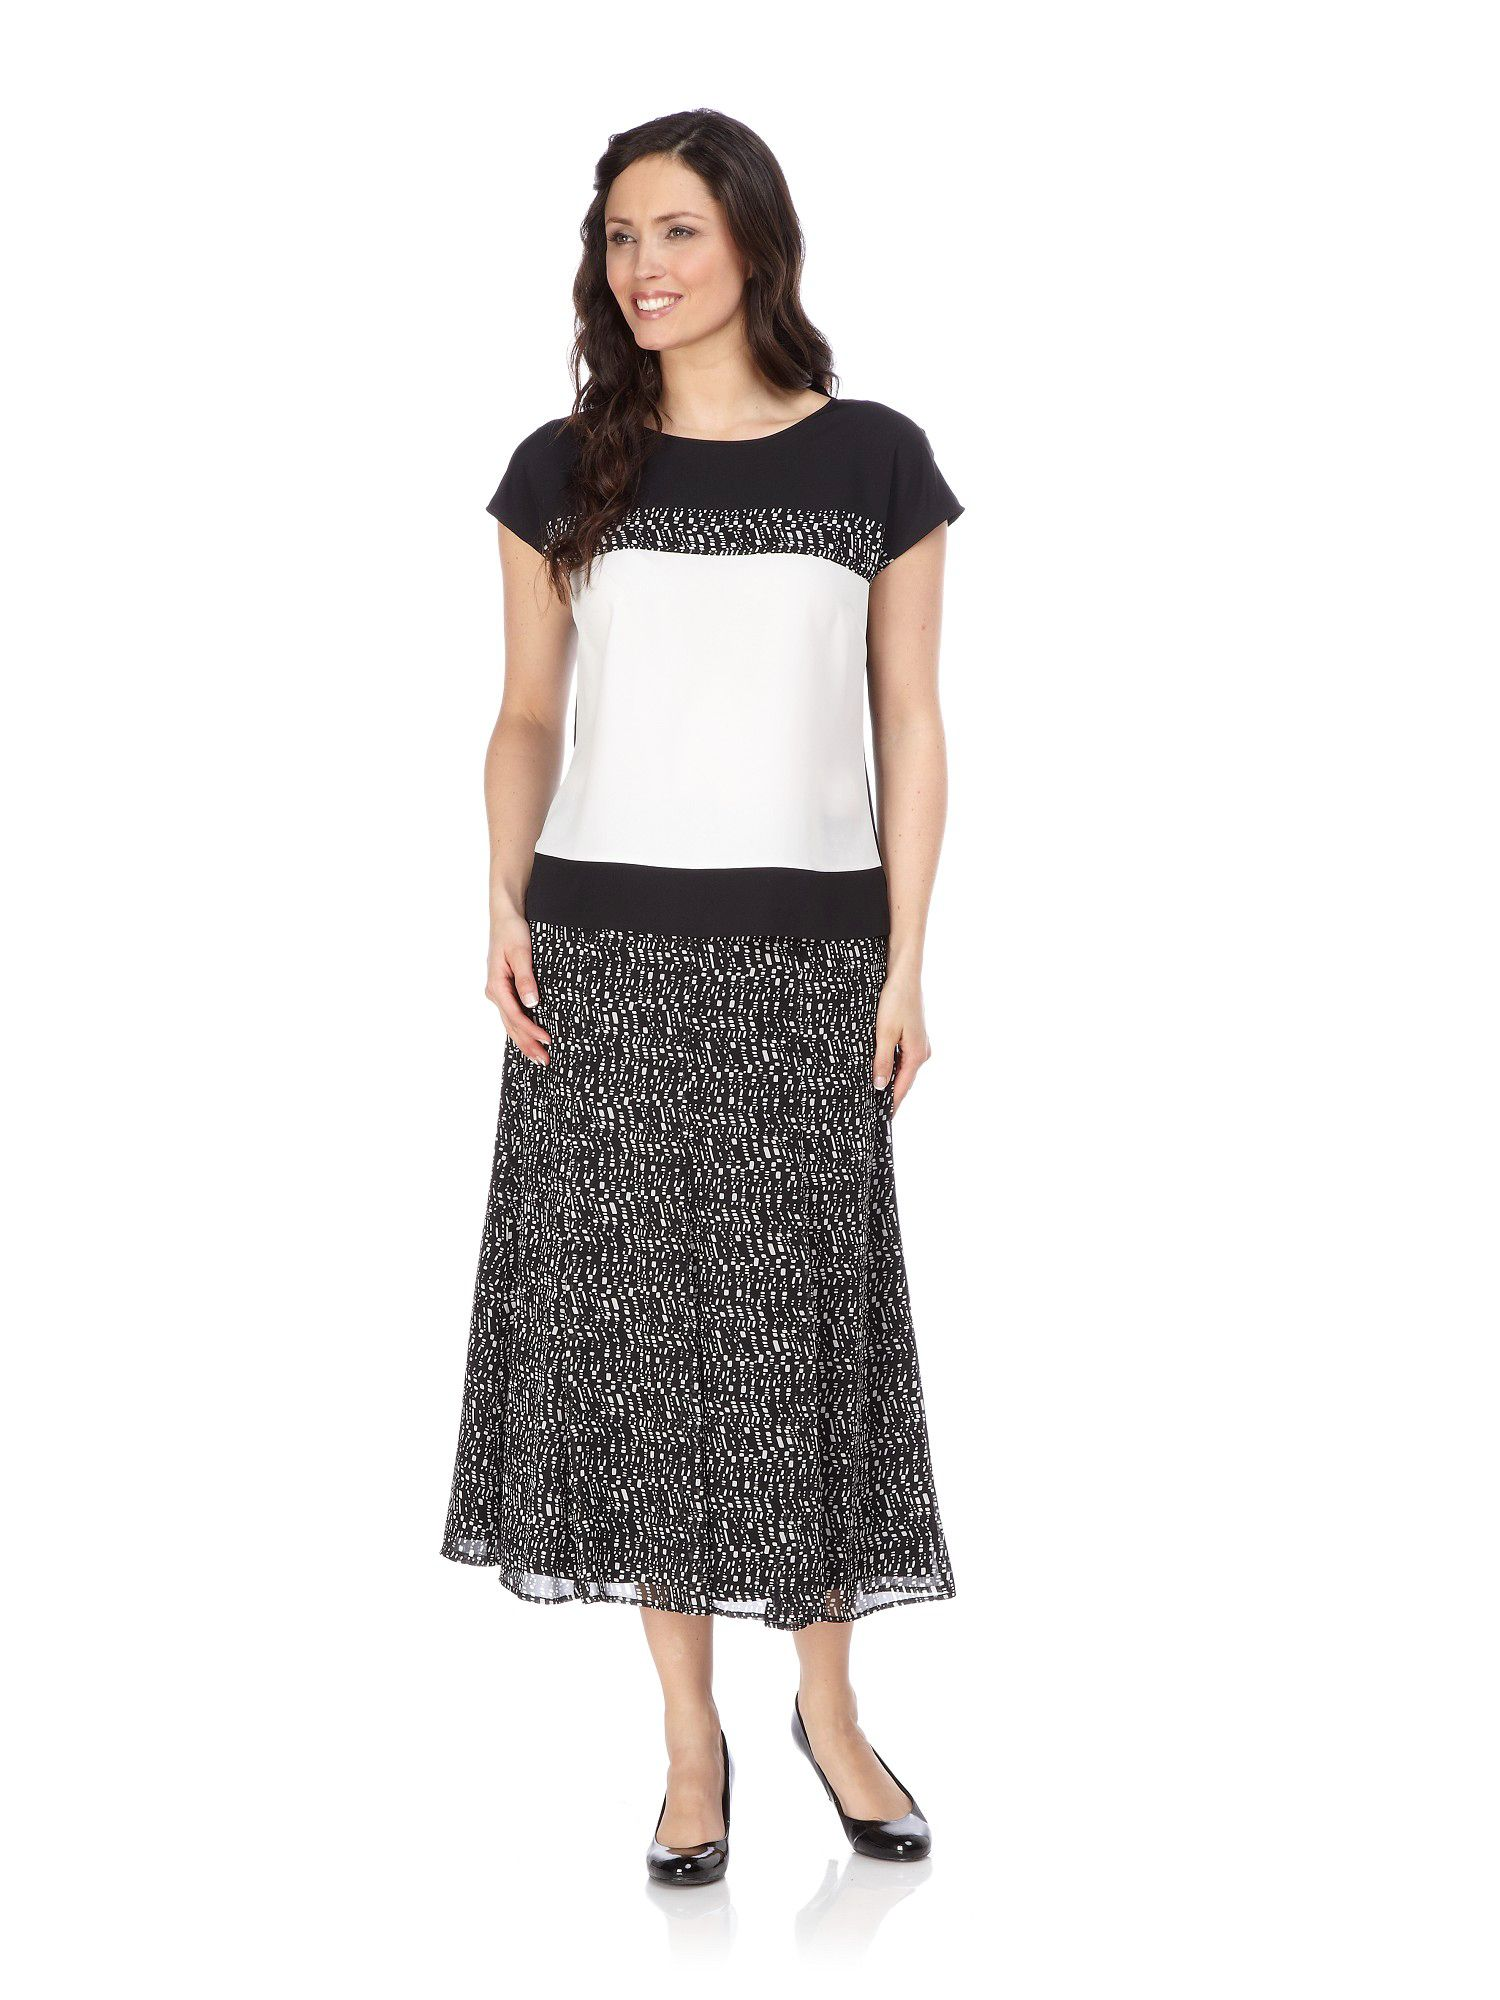 Pixel print panelled skirt